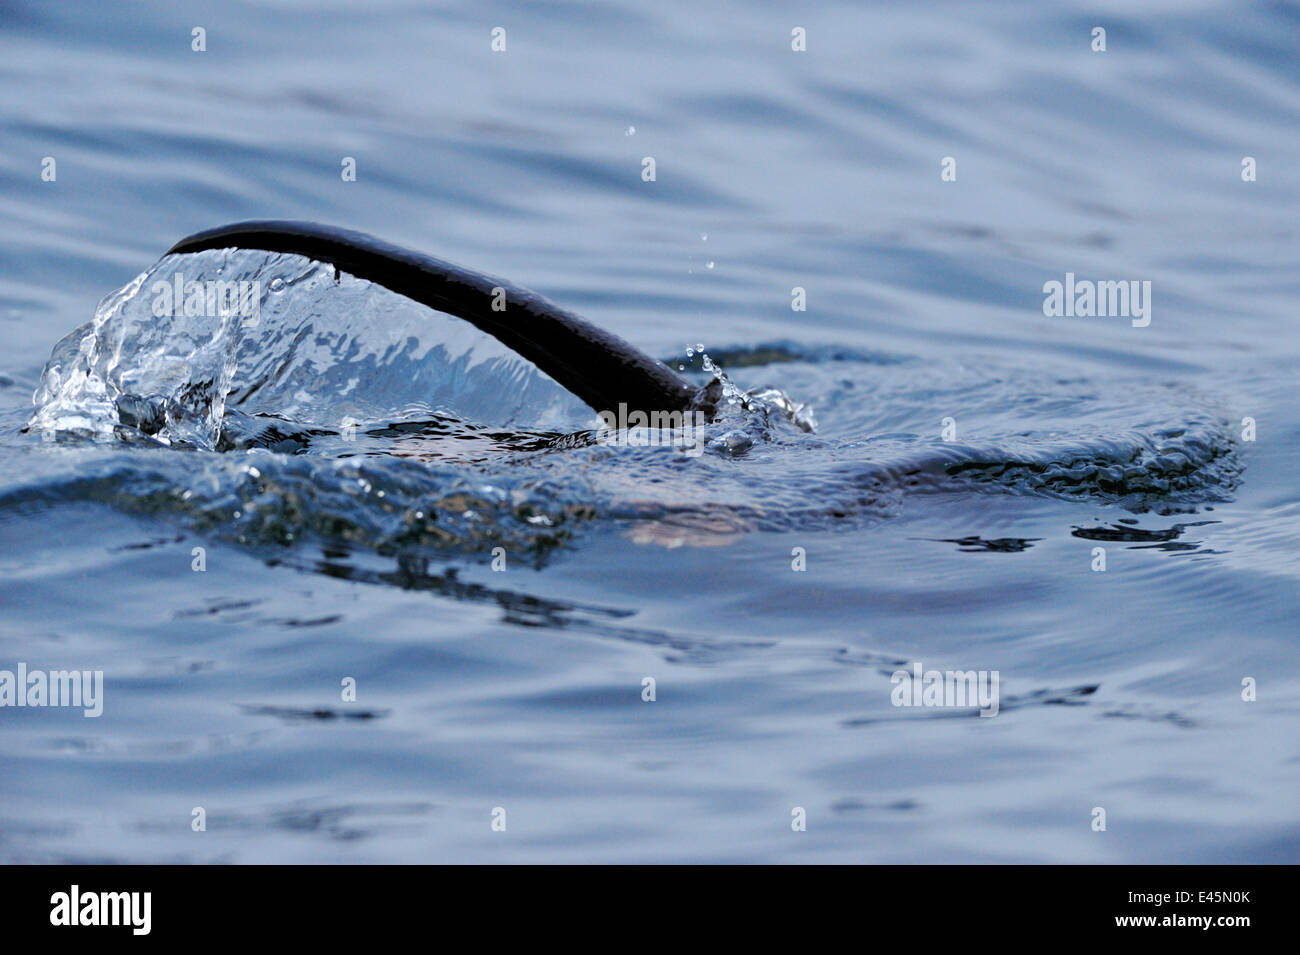 European river otter (Lutra lutra) hunting in sea, tail above water, Ardnamurchan, Scotland, January 2009 - Stock Image